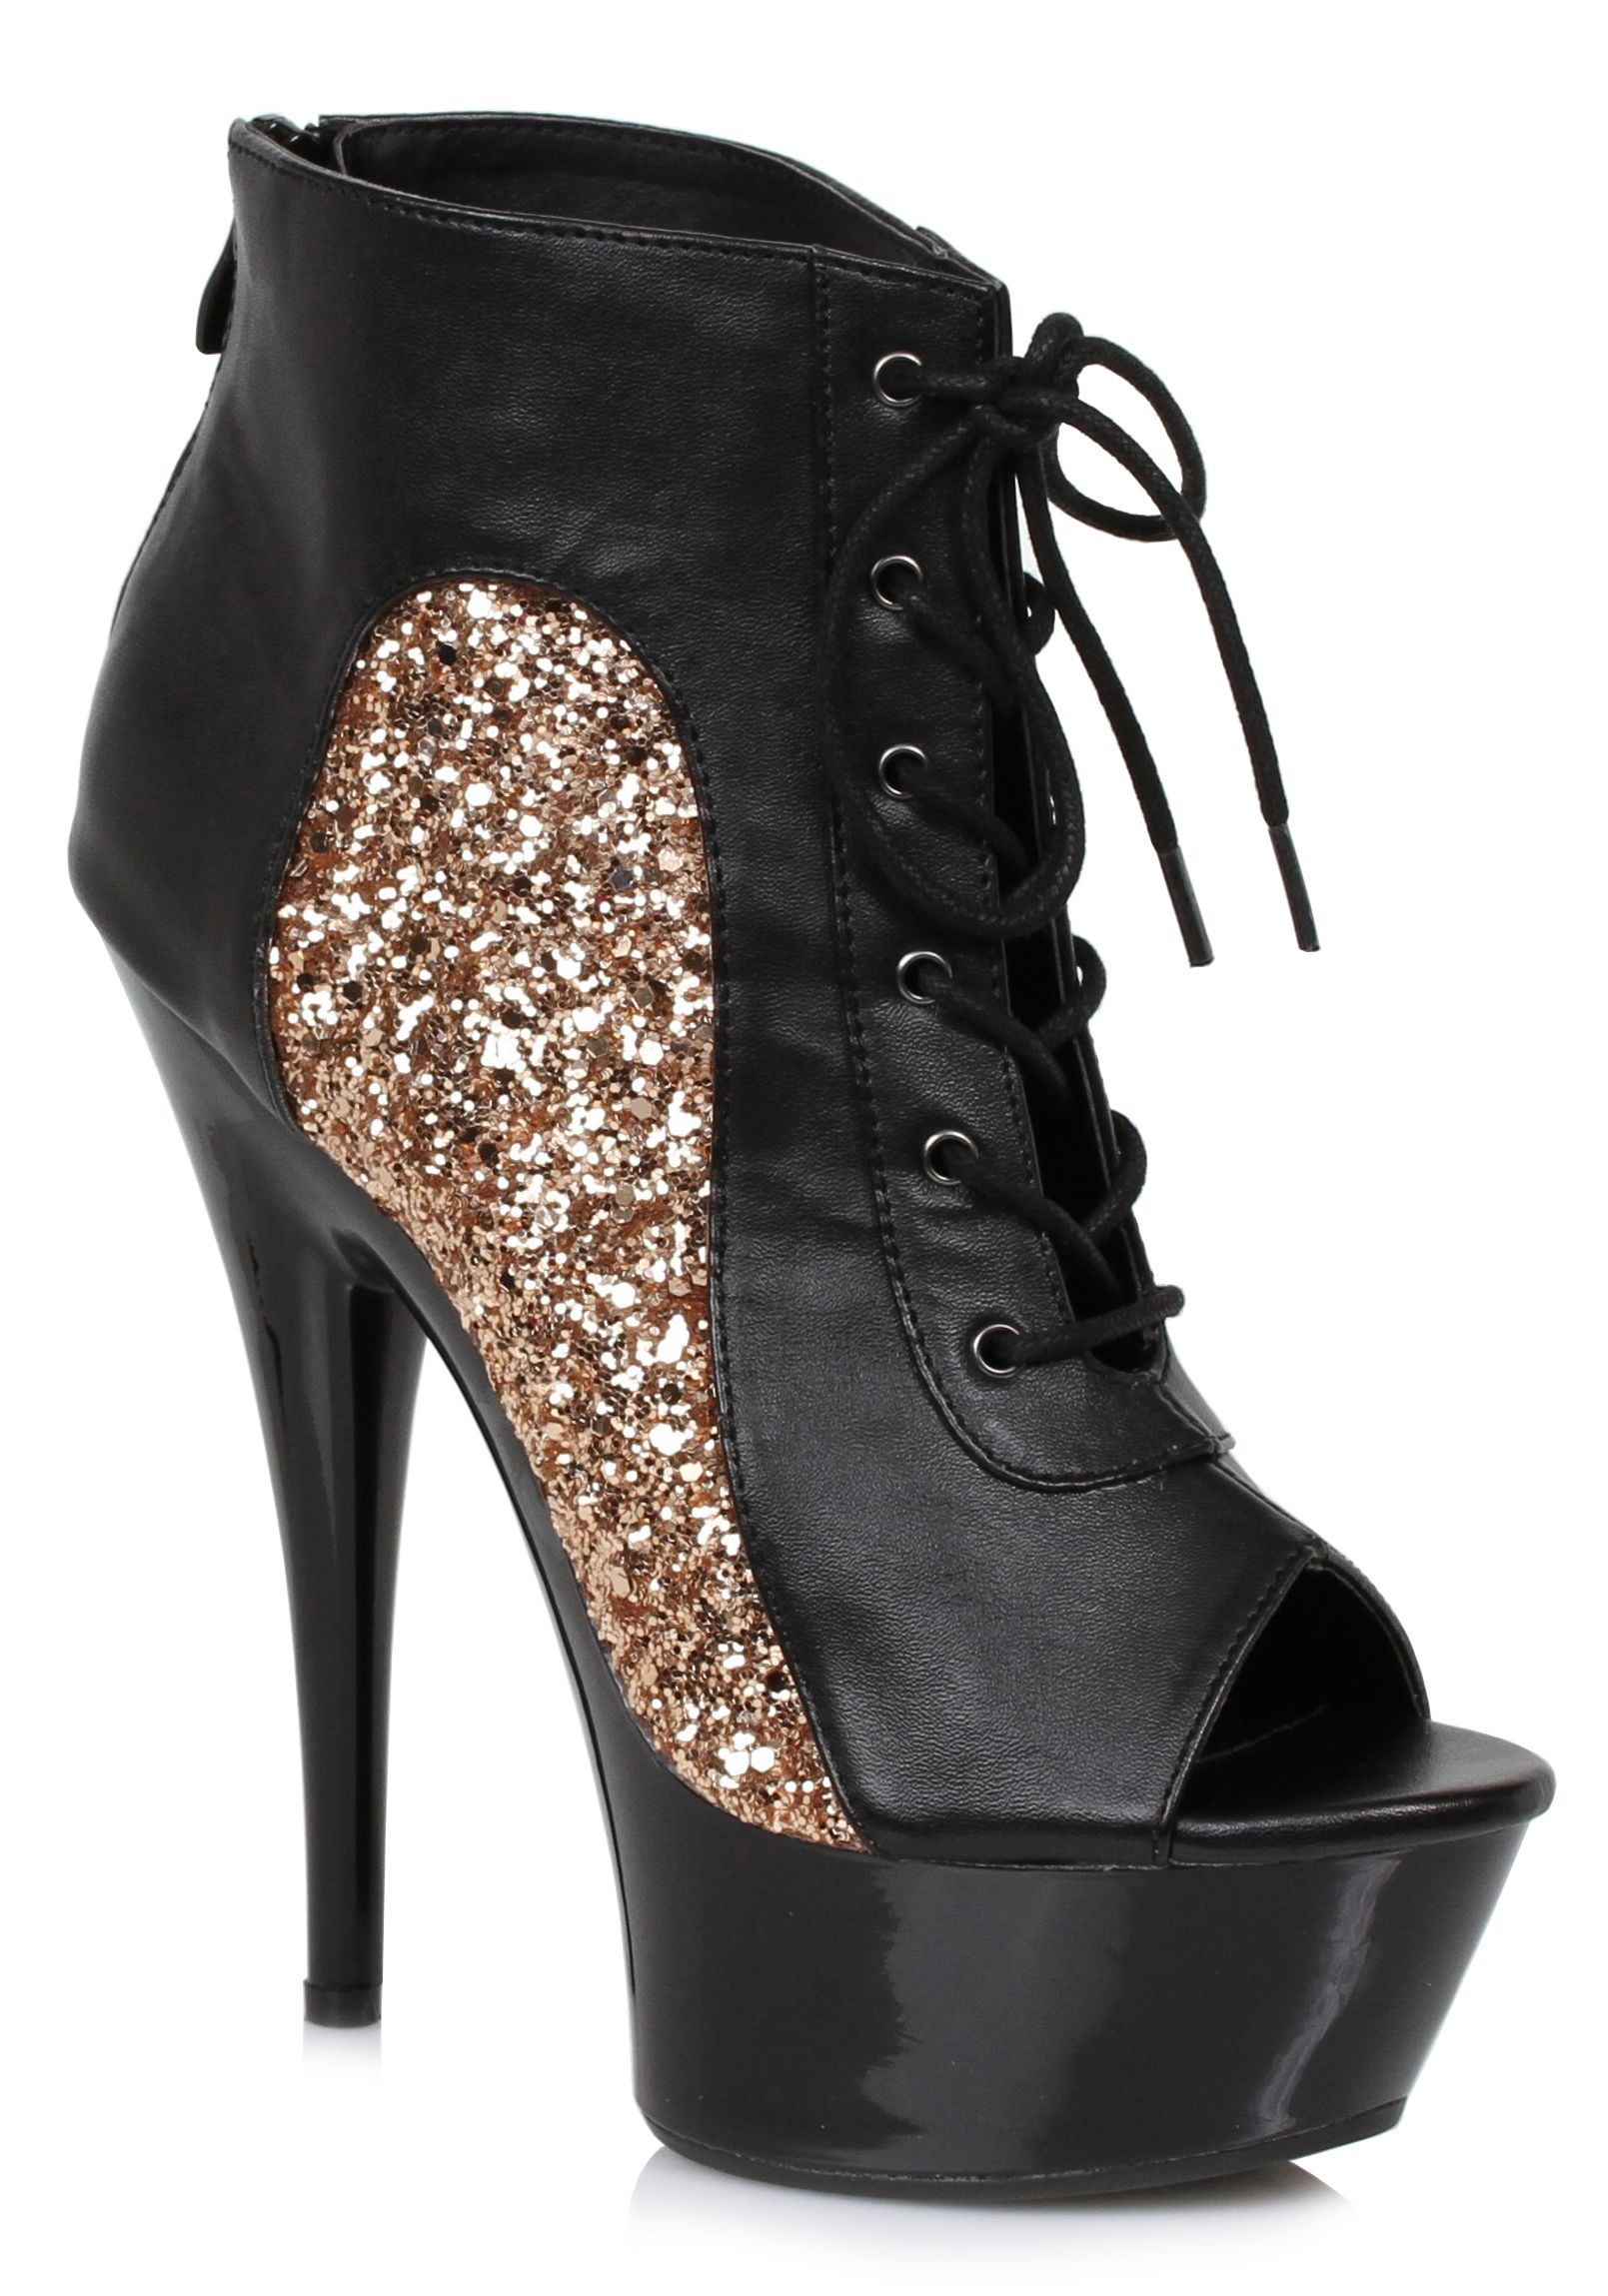 Ellie-Shoes-609-NICKY-6-Inch-Booty-With-Glitter-Detail thumbnail 3